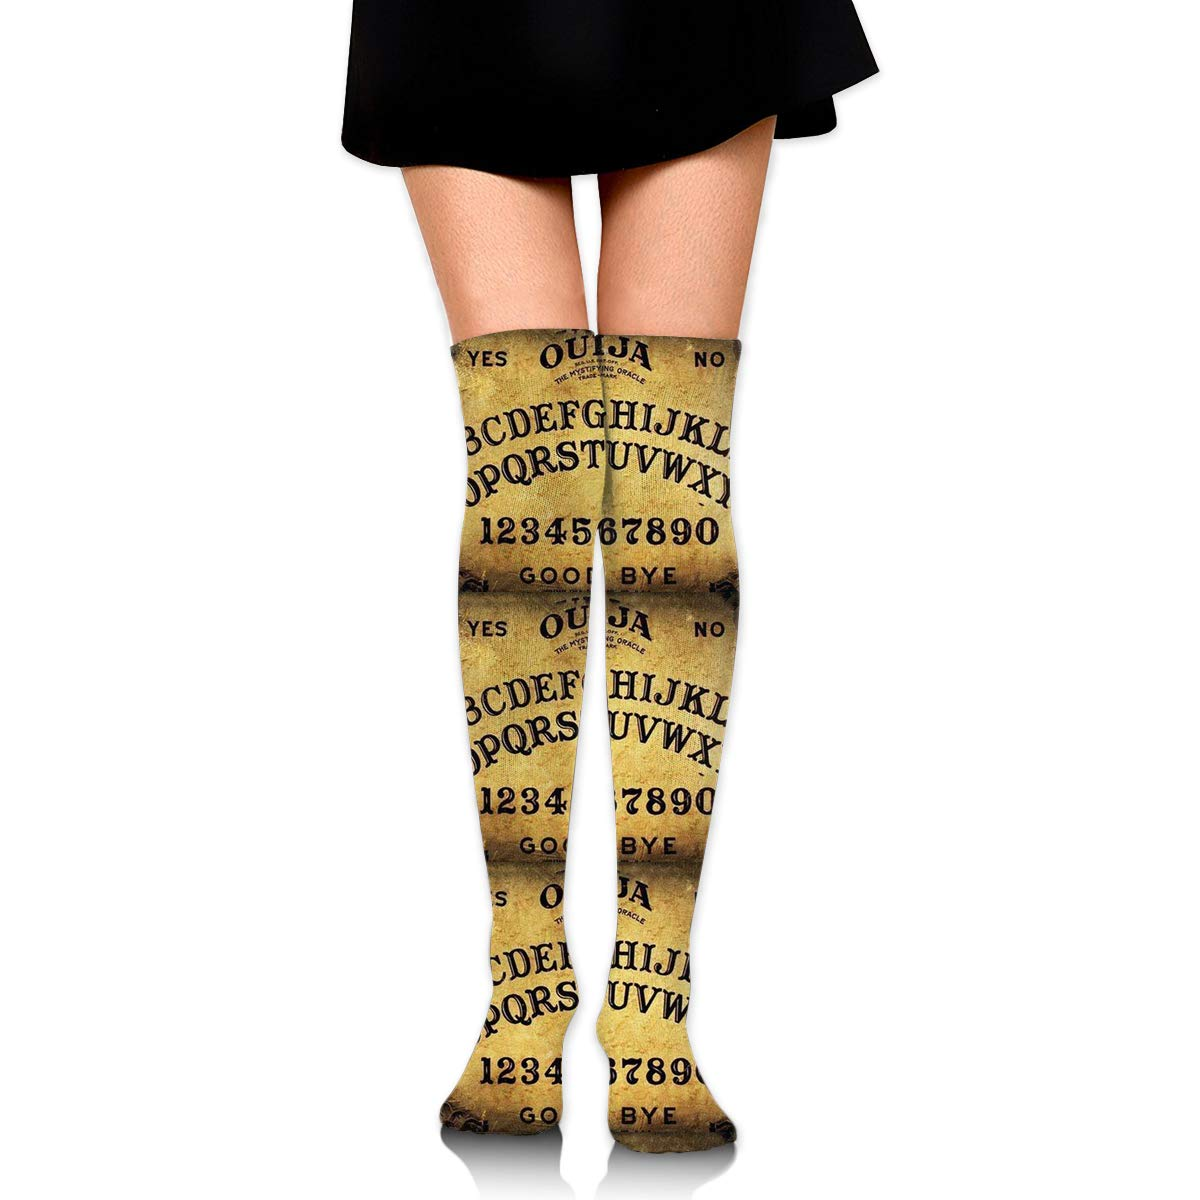 8c3fc012c Dangerous Magical Game Ouija Board Pattern Popular Design Great Gift For  Valentine's Day Compression Socks Thigh High Socks Over The Knee Socks For  Men ...